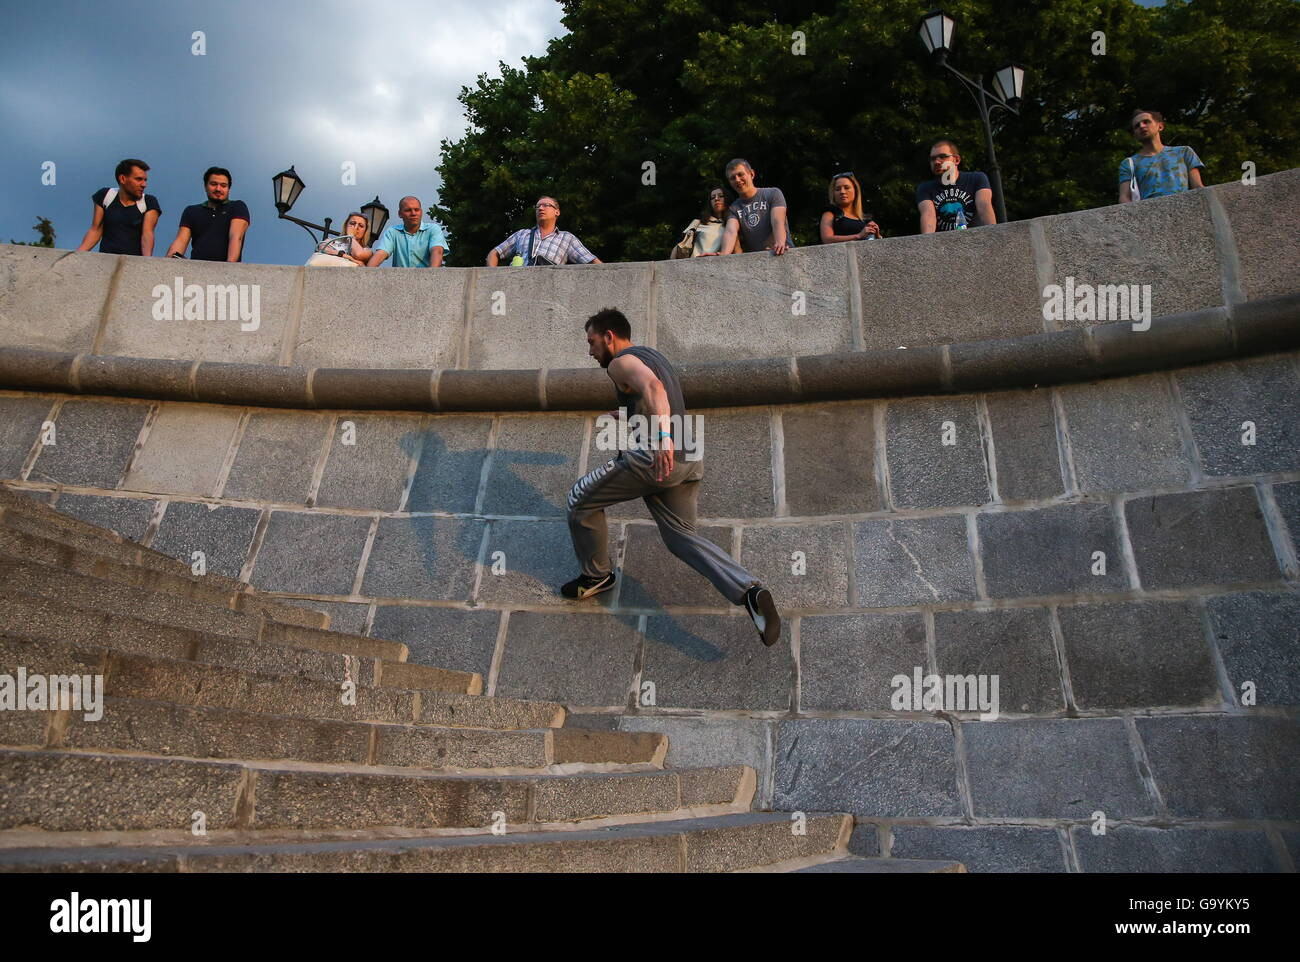 Moscow, Russia. 1st July, 2016. A traceur of the Moscow Academy of Parkour during a training session on Pushkinskaya - Stock Image